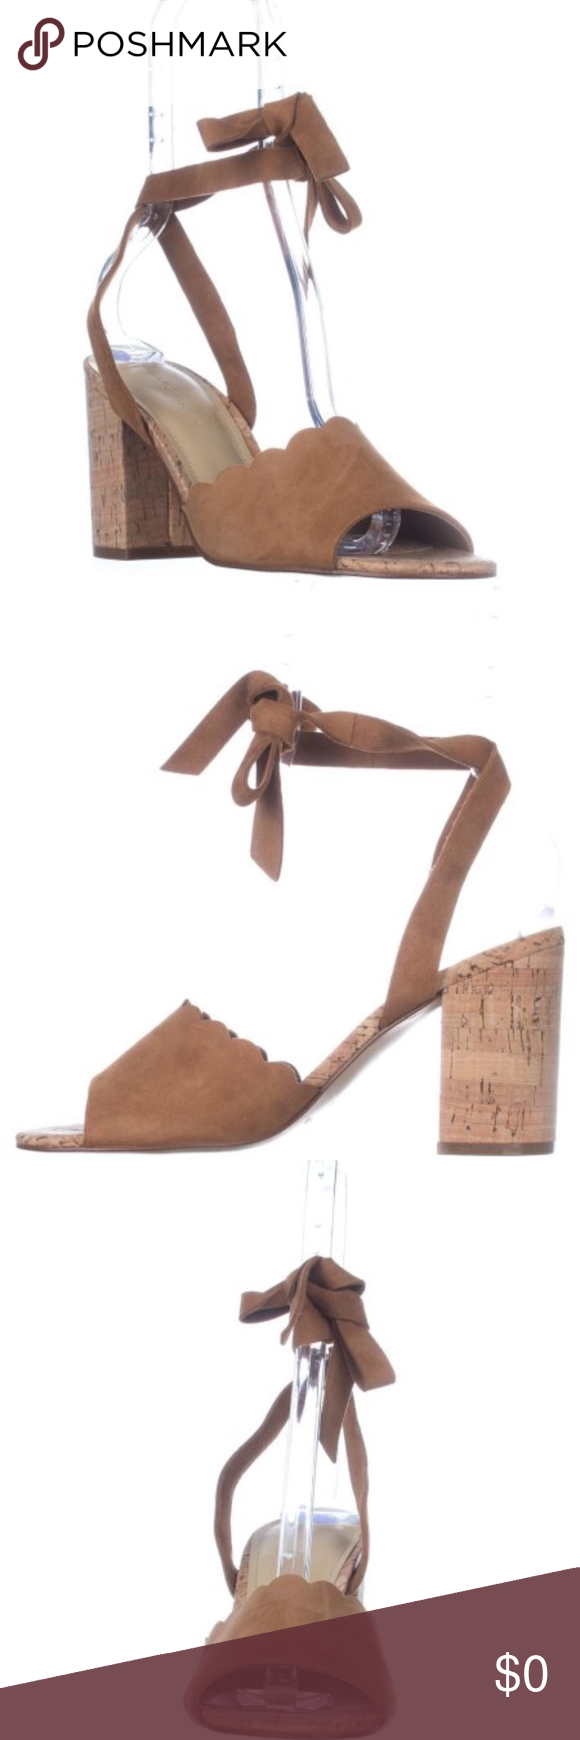 7af6ac6cd56 Marc Fisher Piya Lace-Up Cork Heel Authentic brand new